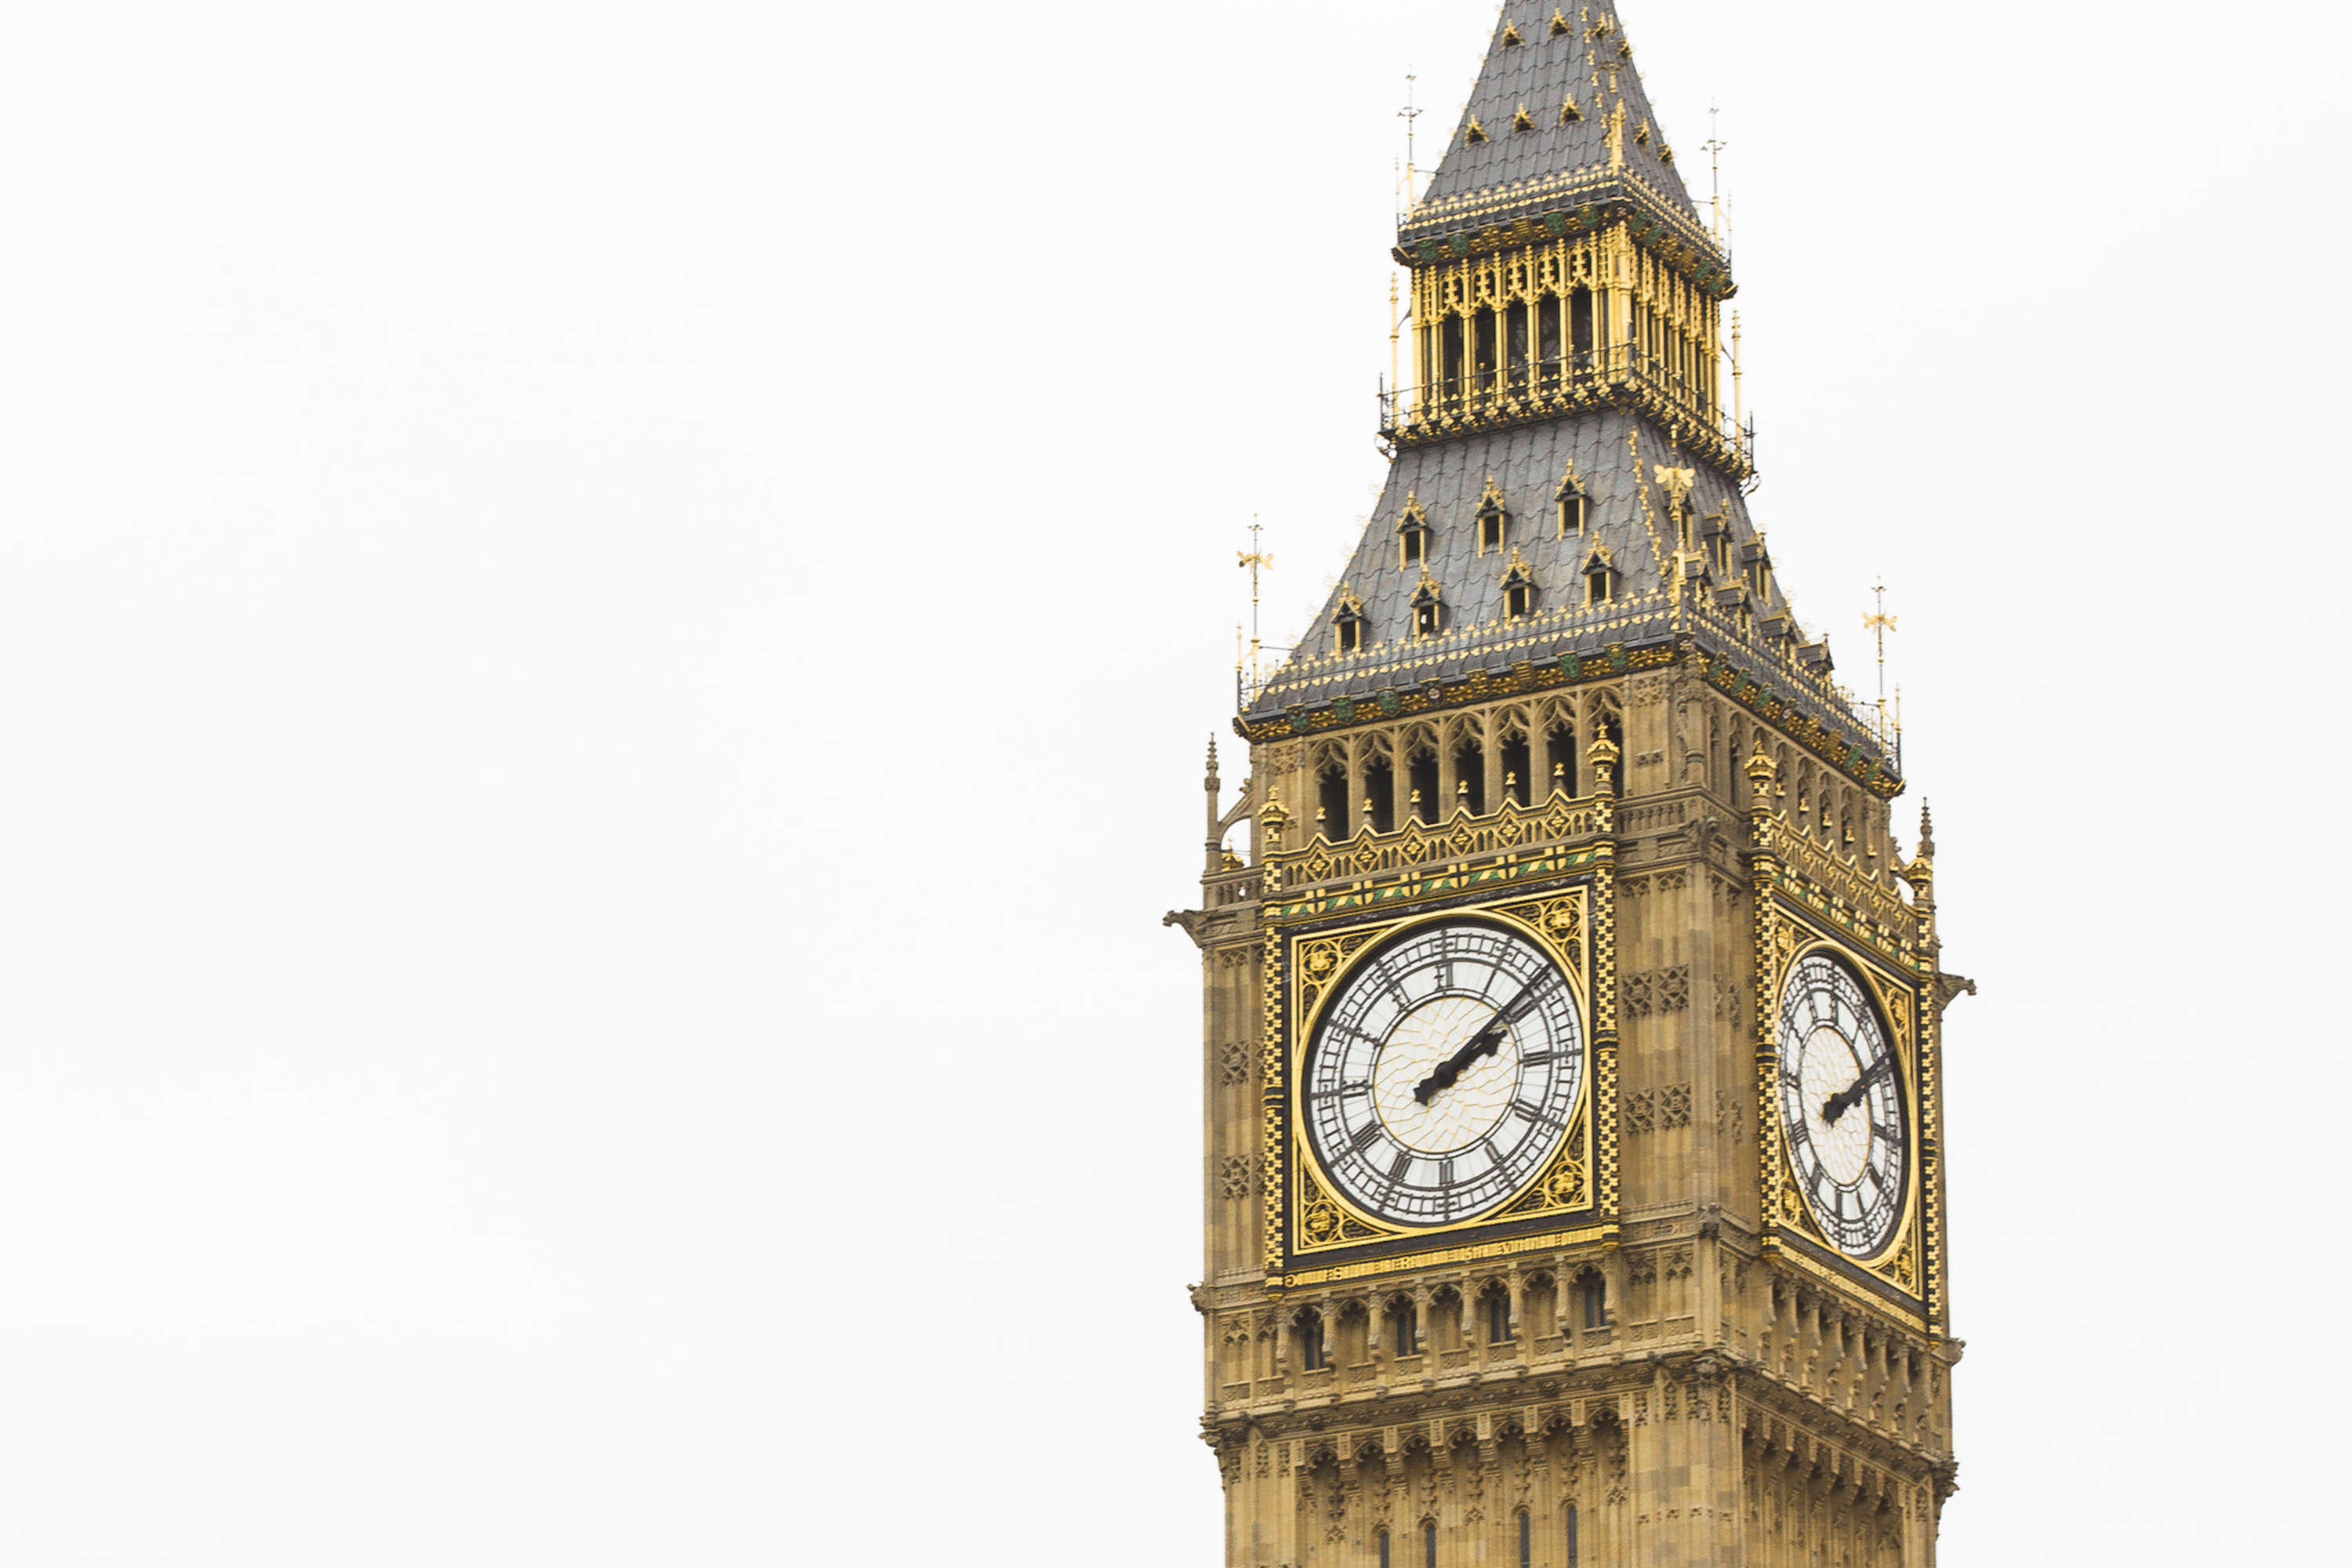 3000x2000 How To Build A Model Of Big Ben, The Clock Tower Synonym